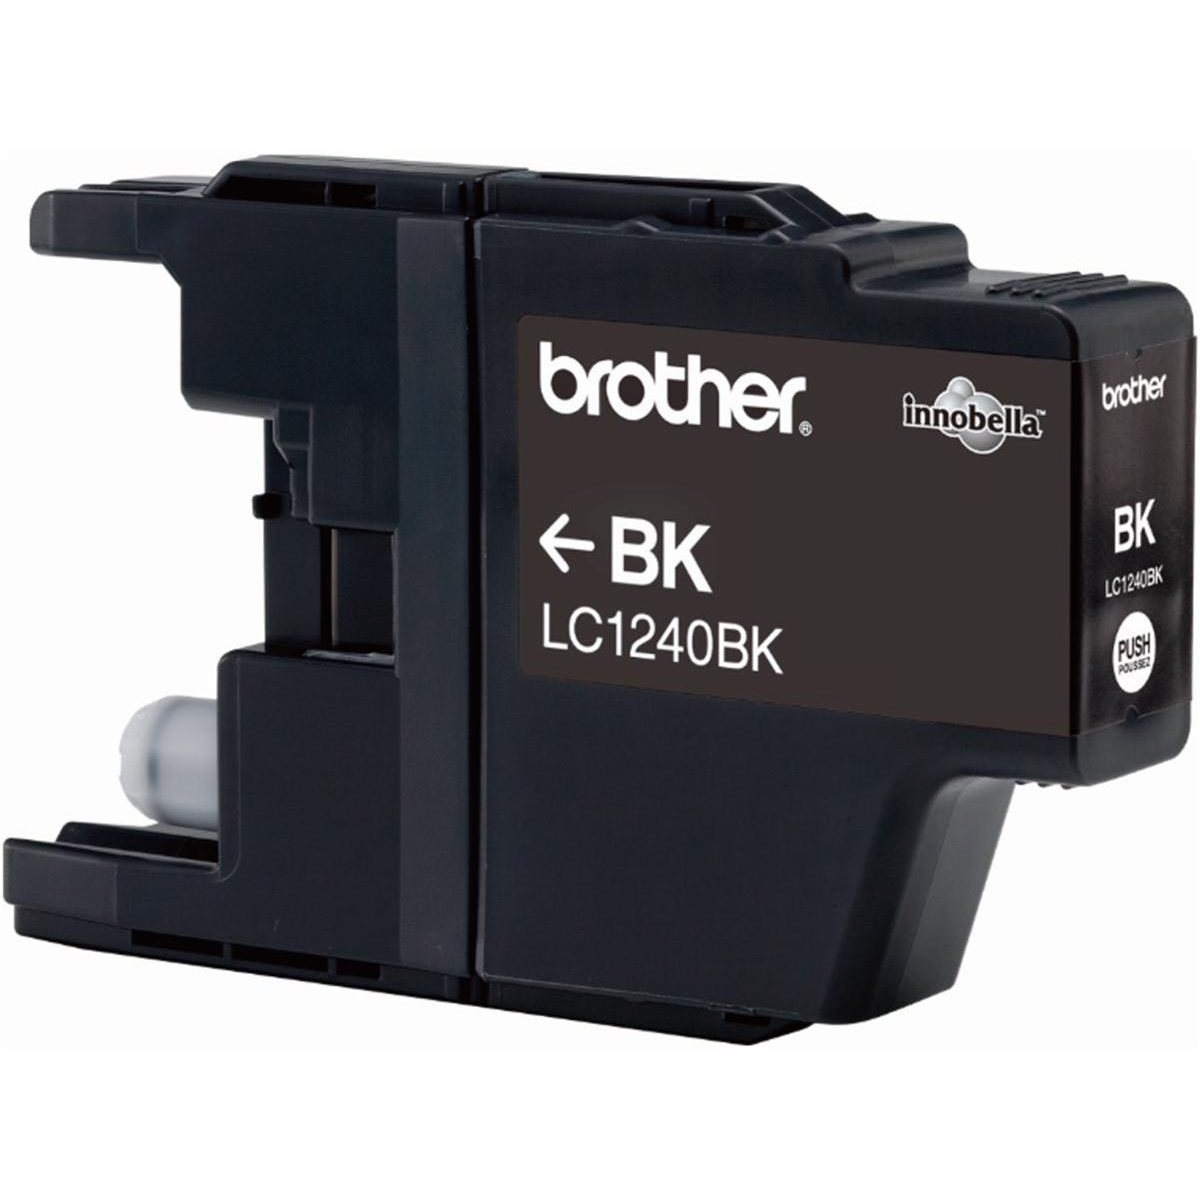 Brother Inkjet Cartridge Page Life 600pp Black Ref LC1240BK